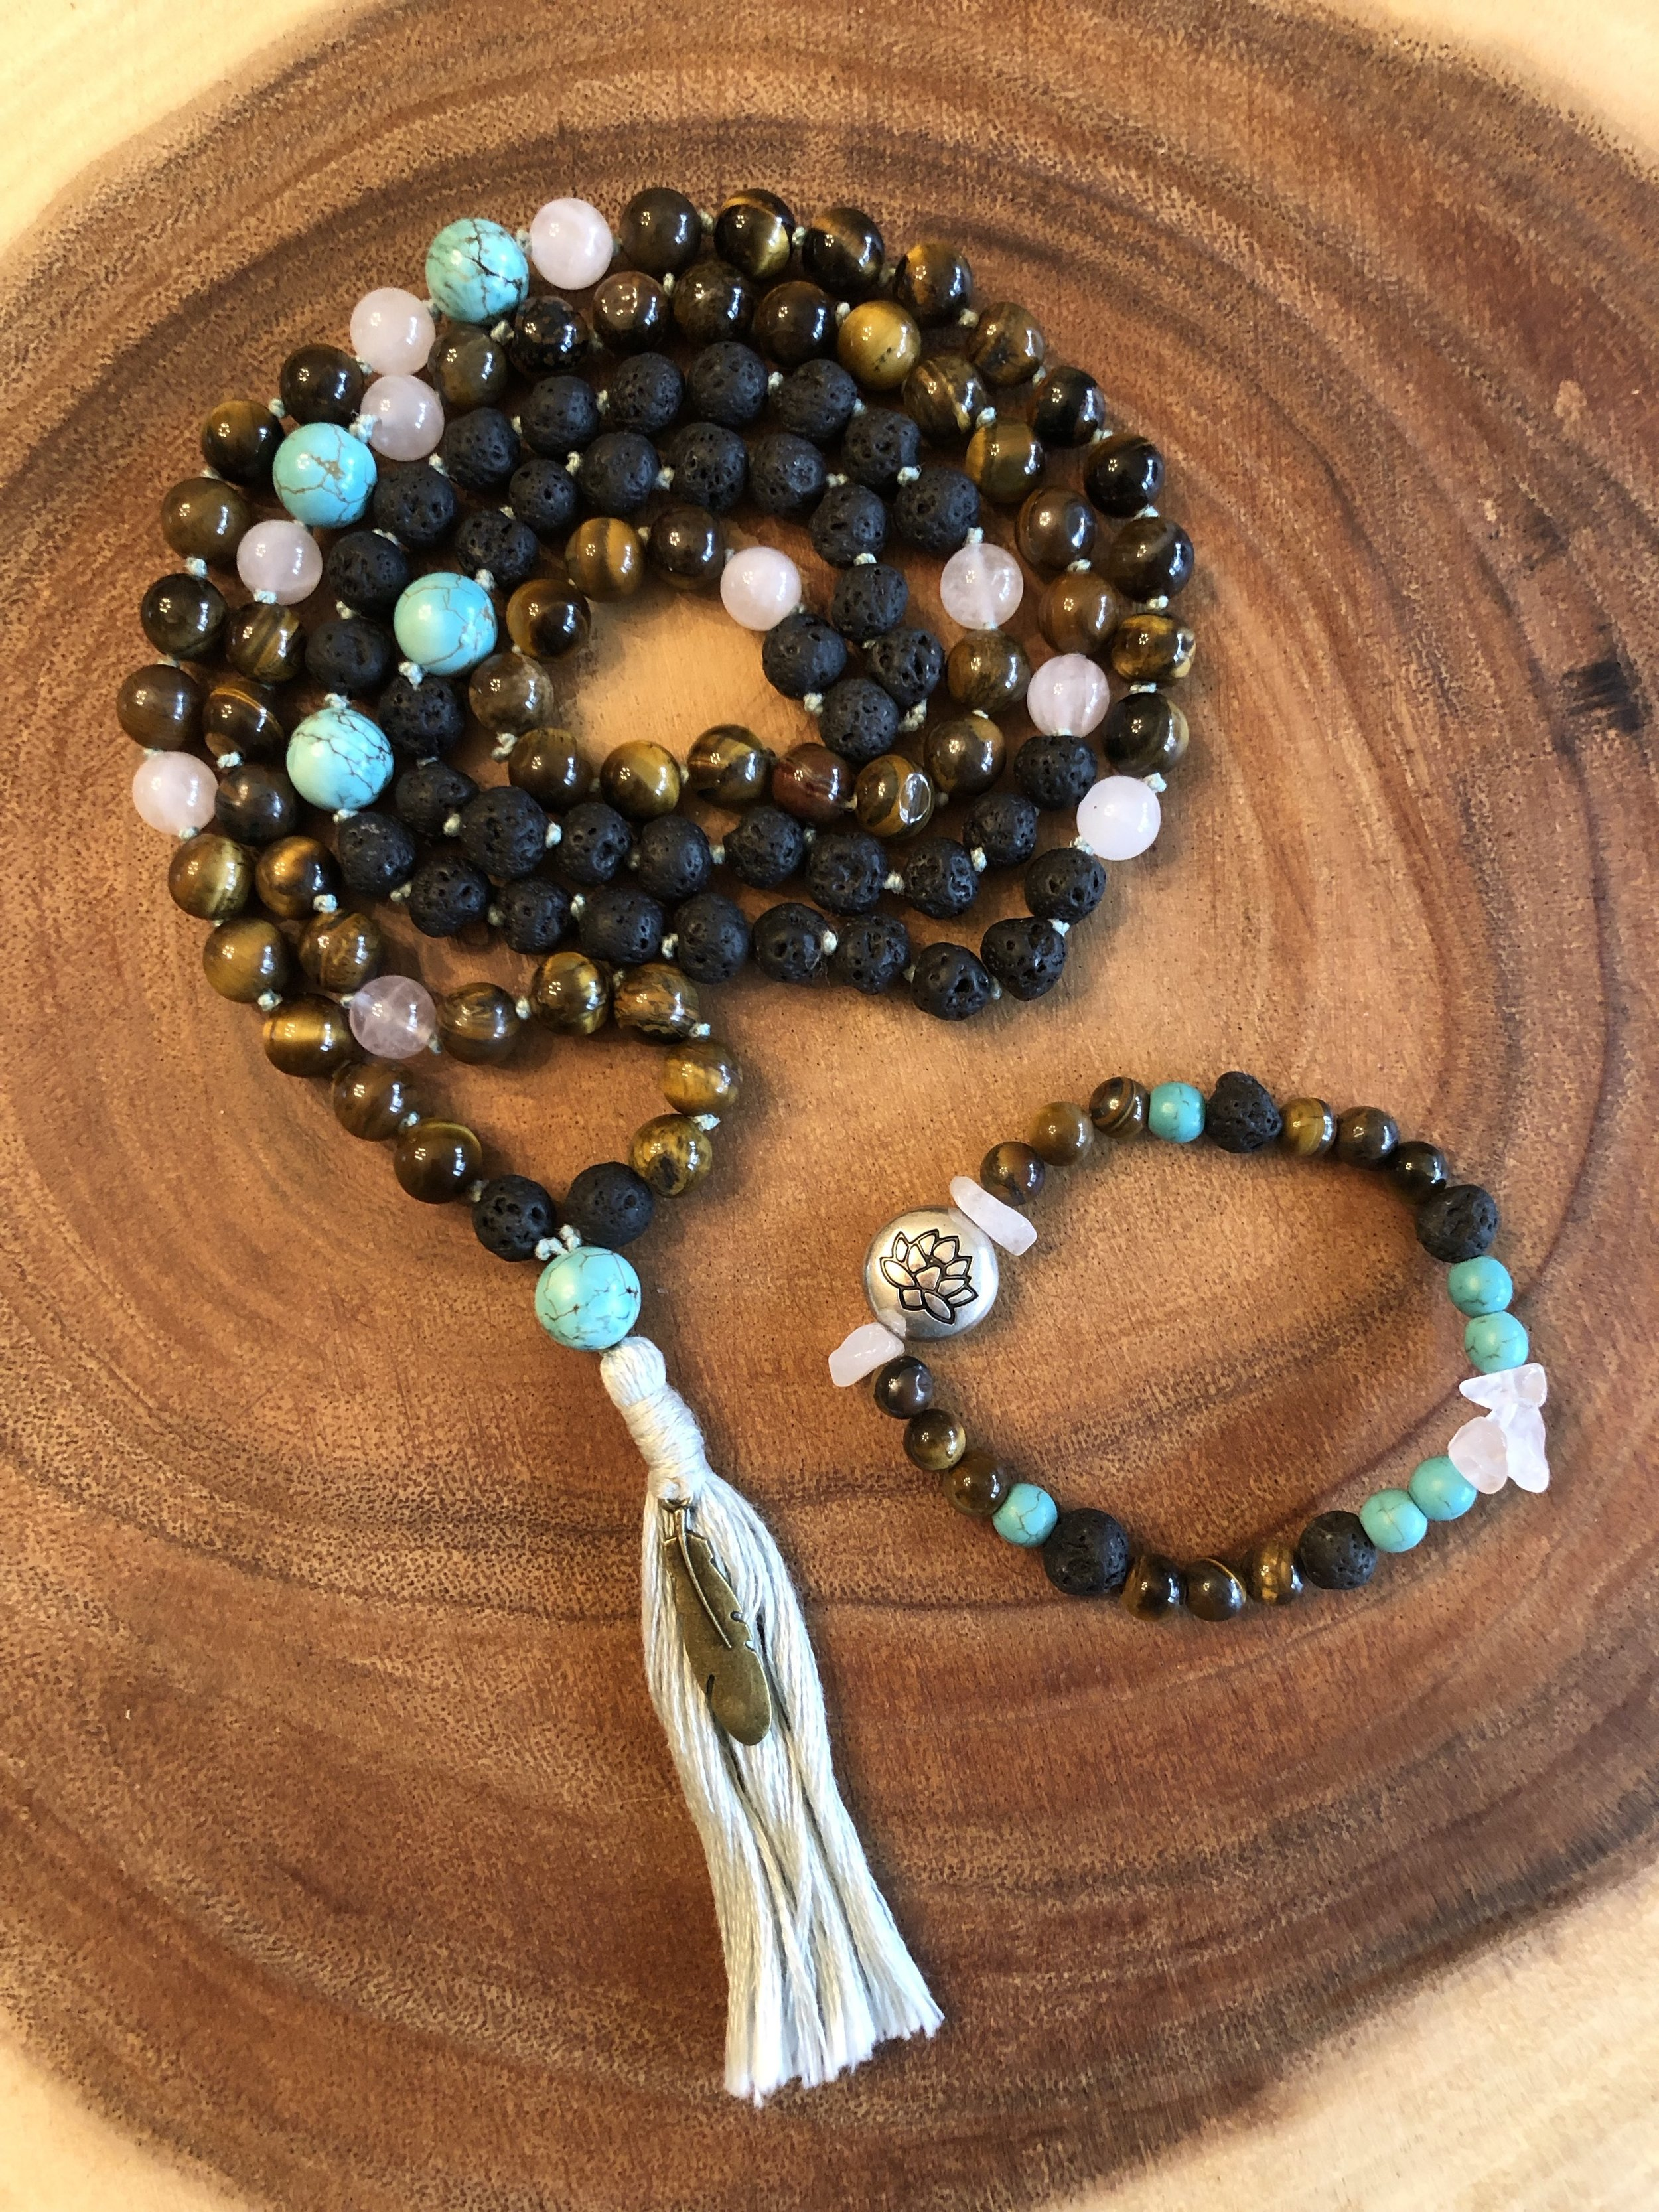 ♡ Tiger Eye - success & luck ♡  ♡ Lava - strength ♡  ♡ Rose Quartz - love ♡  ♡ Turquoise - protection ♡